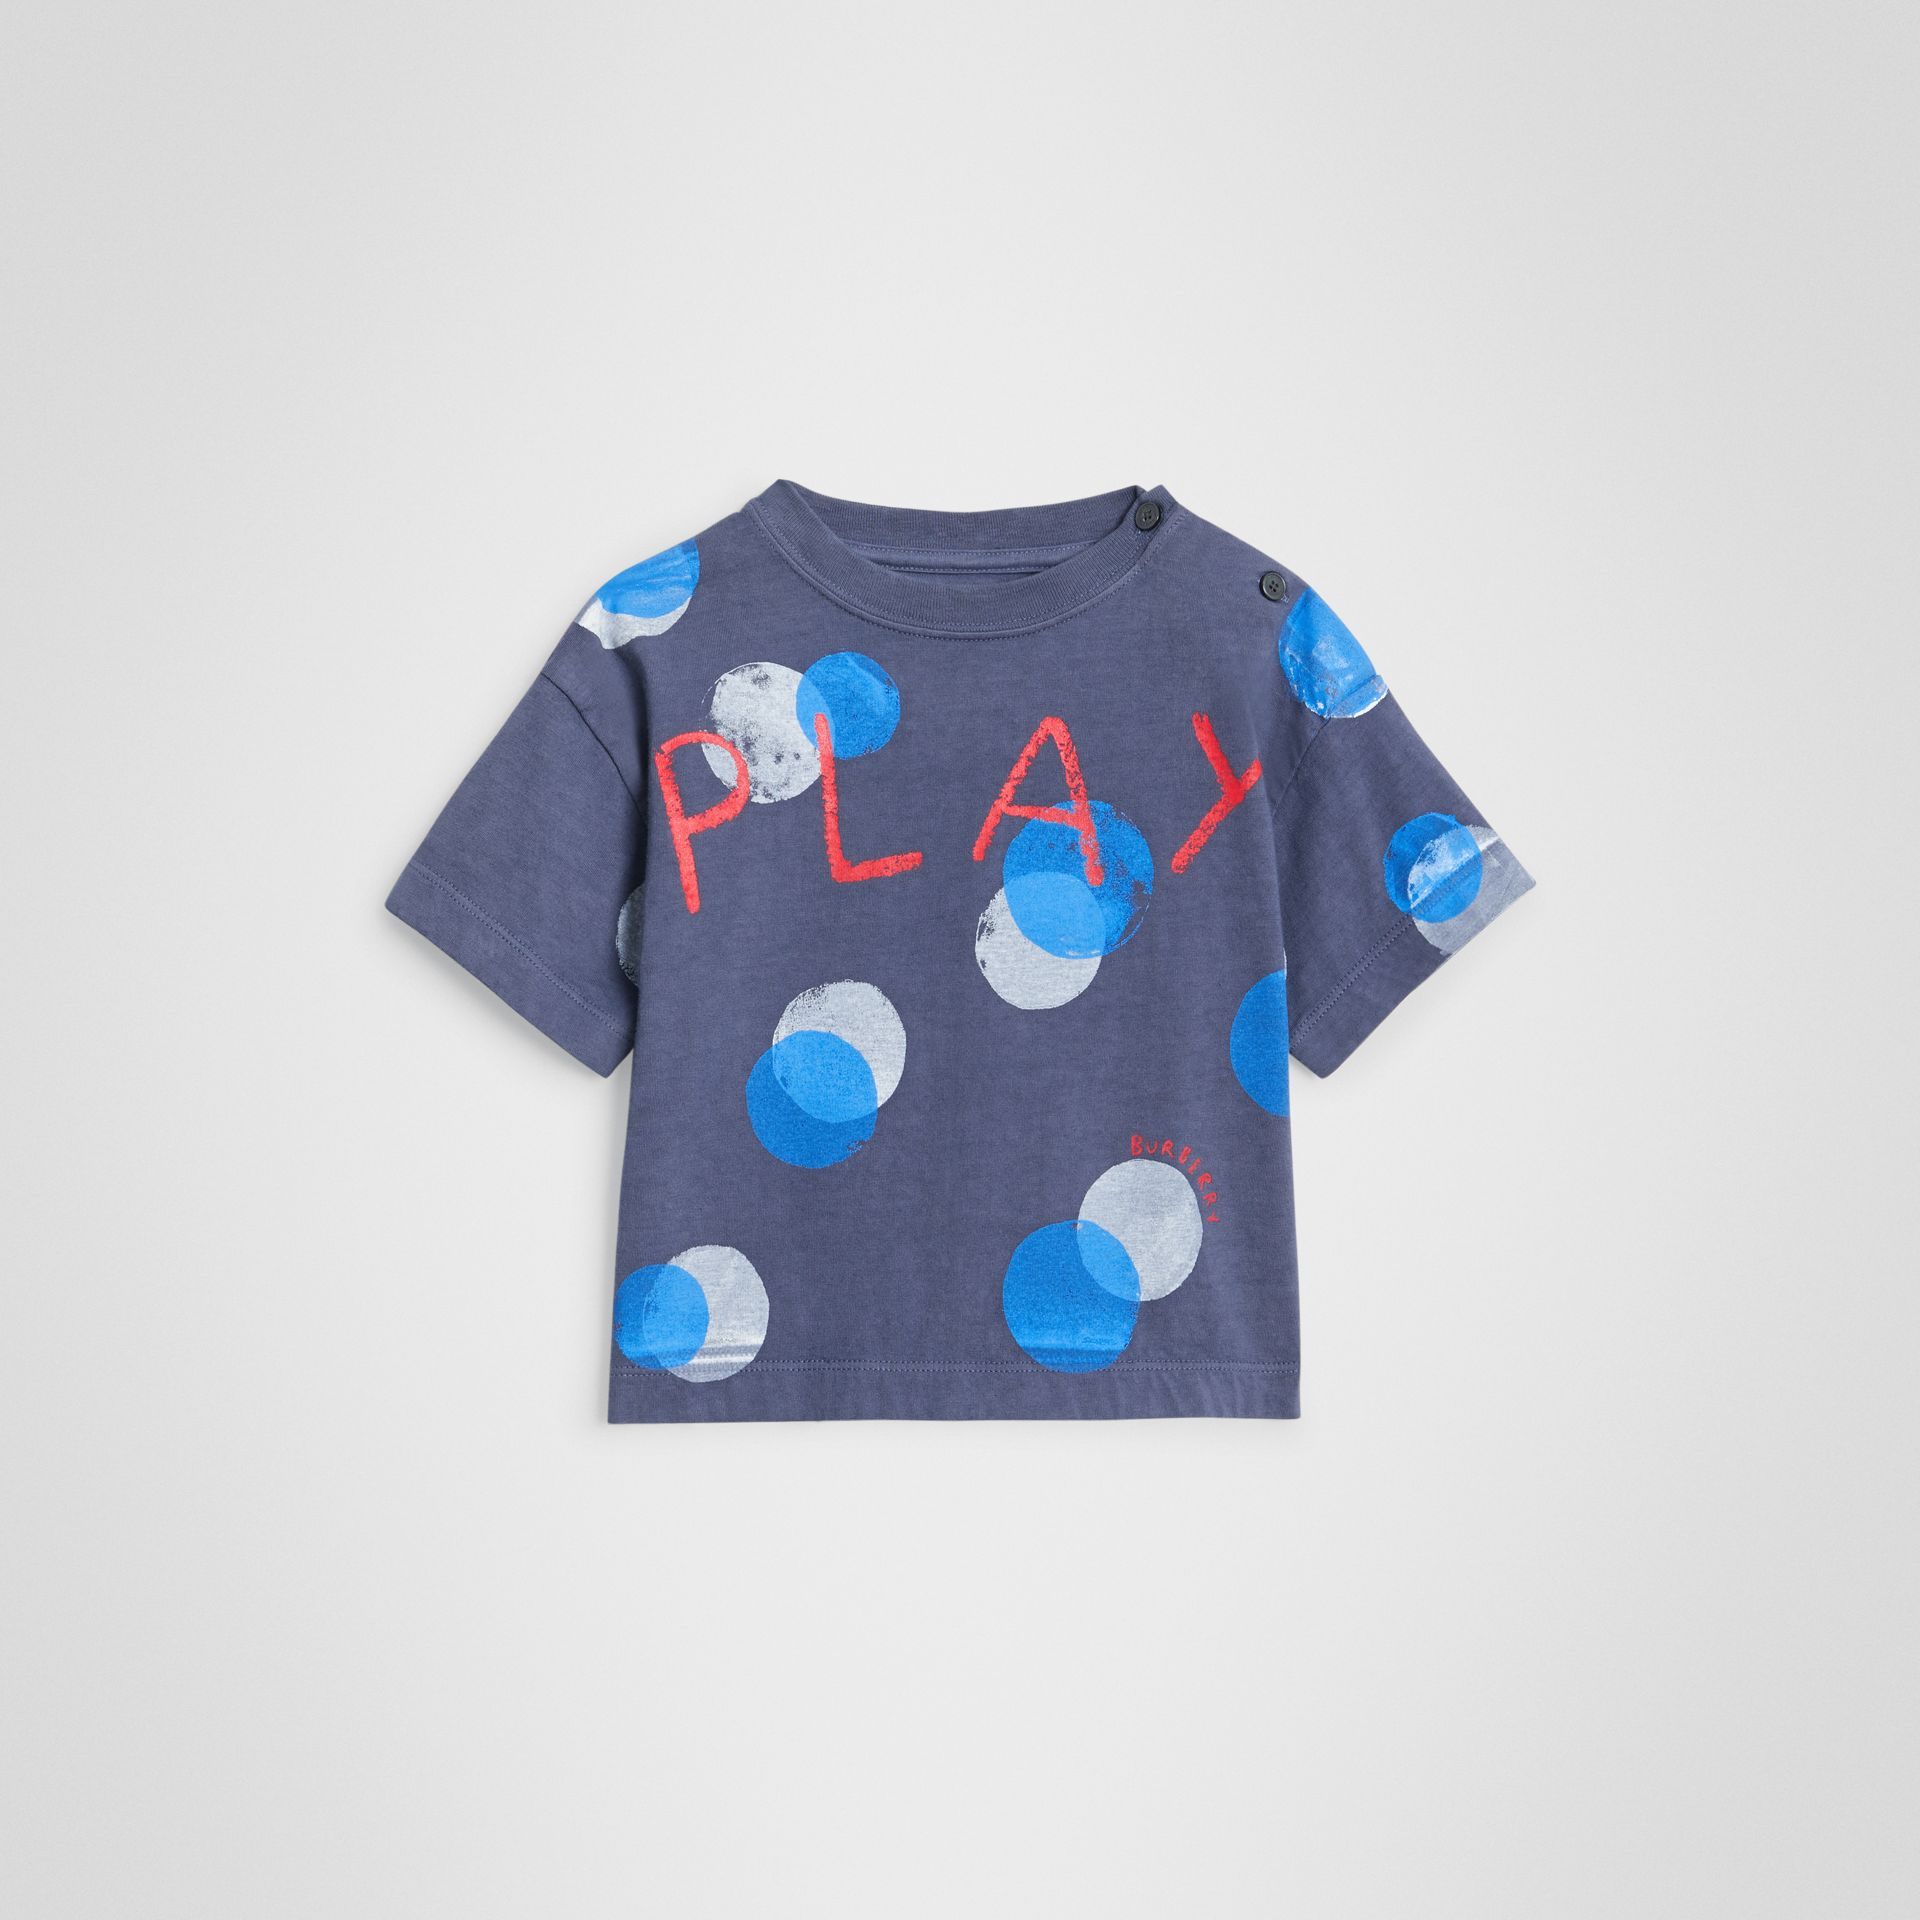 Oversized Spot Print Cotton T-shirt in Navy Melange - Children | Burberry United Kingdom - gallery image 0